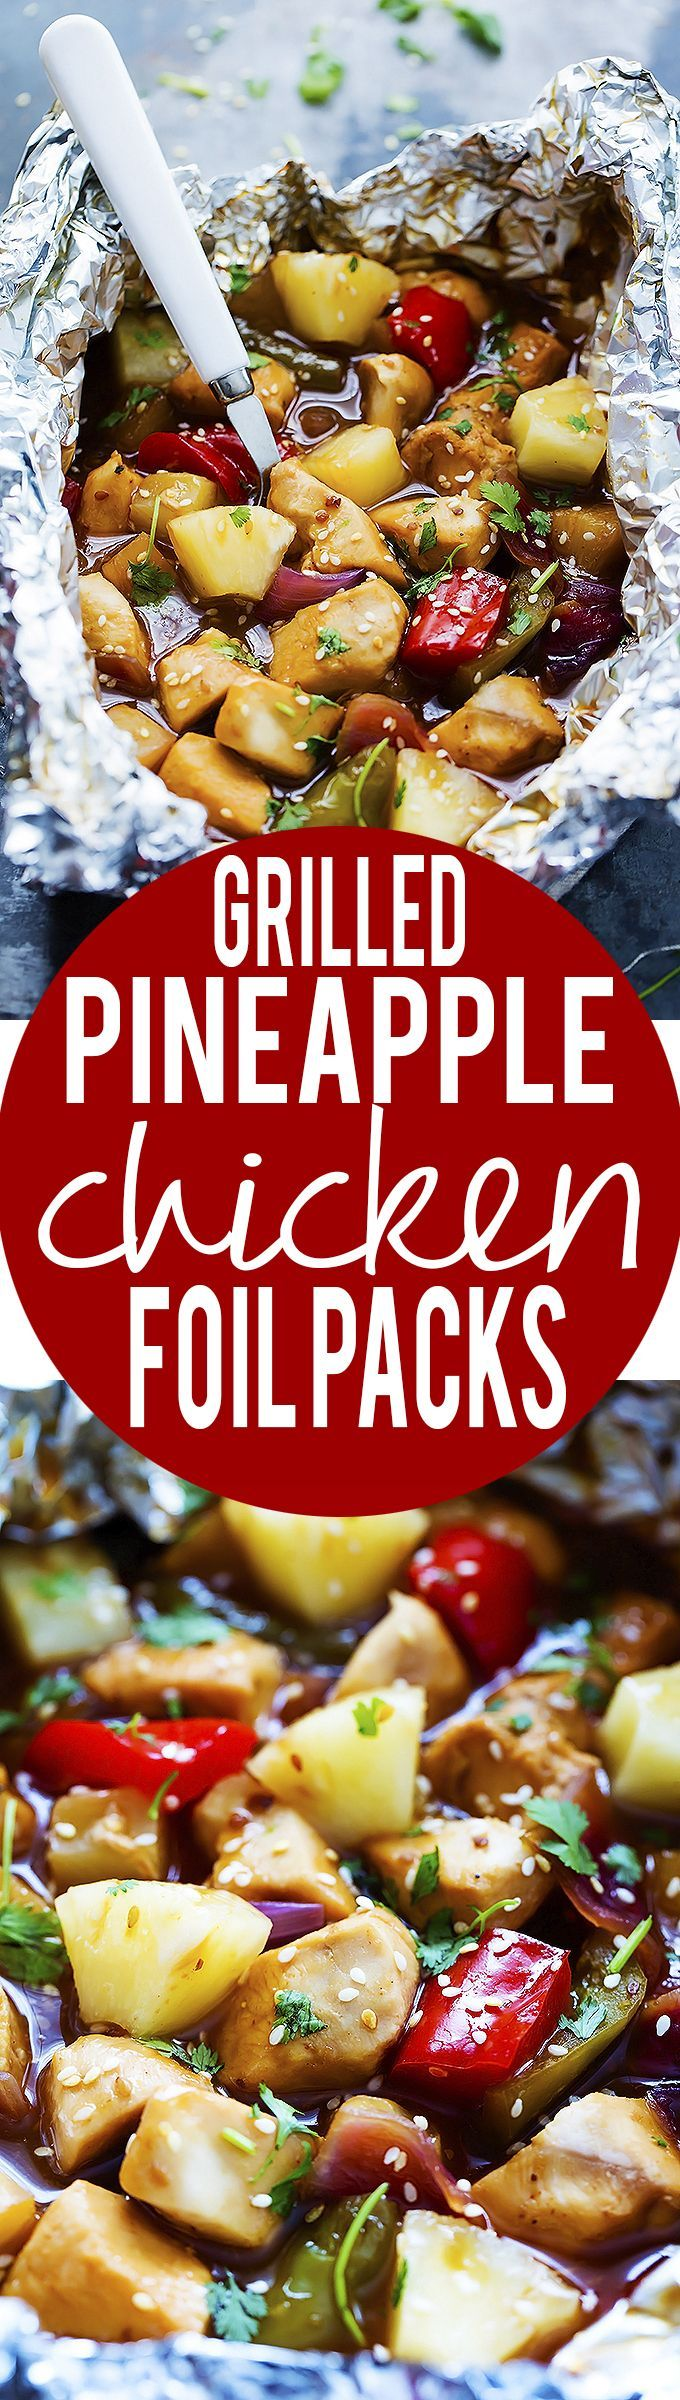 Grilled Pineapple Chicken Foil Packets | Creme de la Crumb